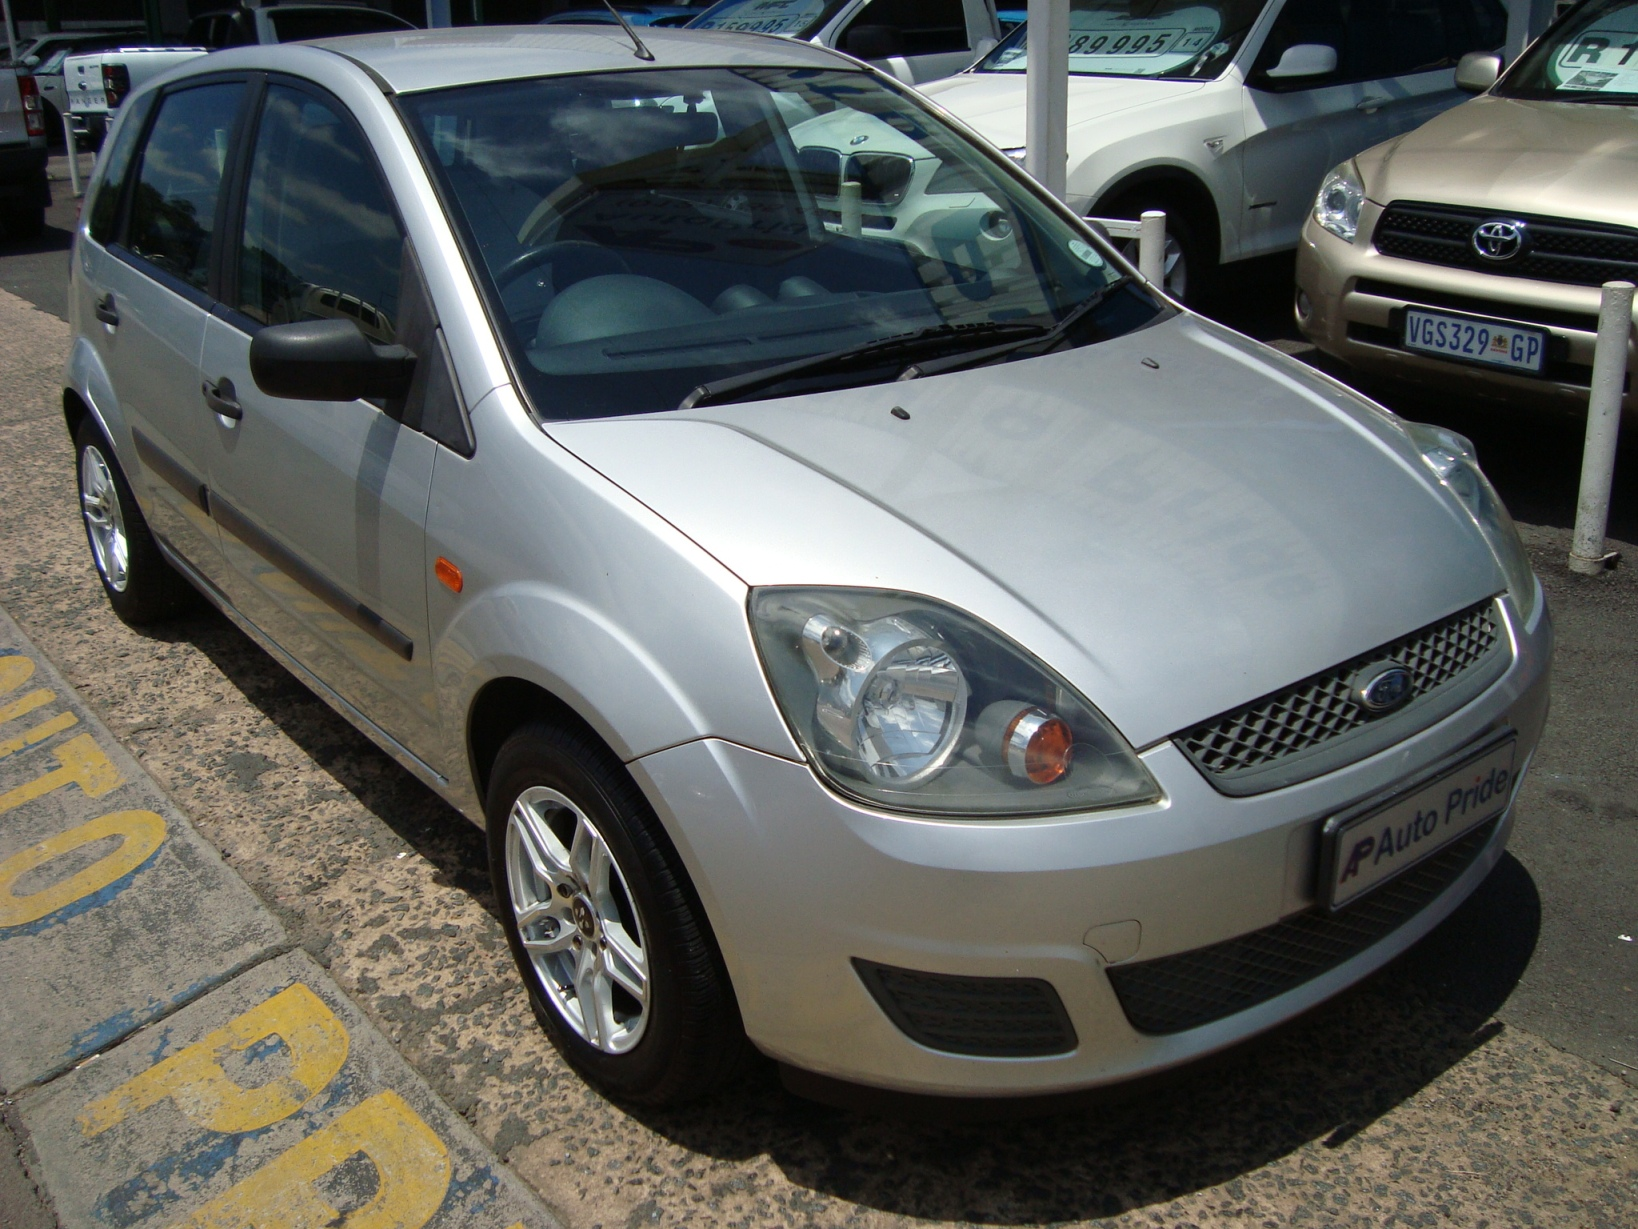 Ford Fiesta 1.4i 5dr full